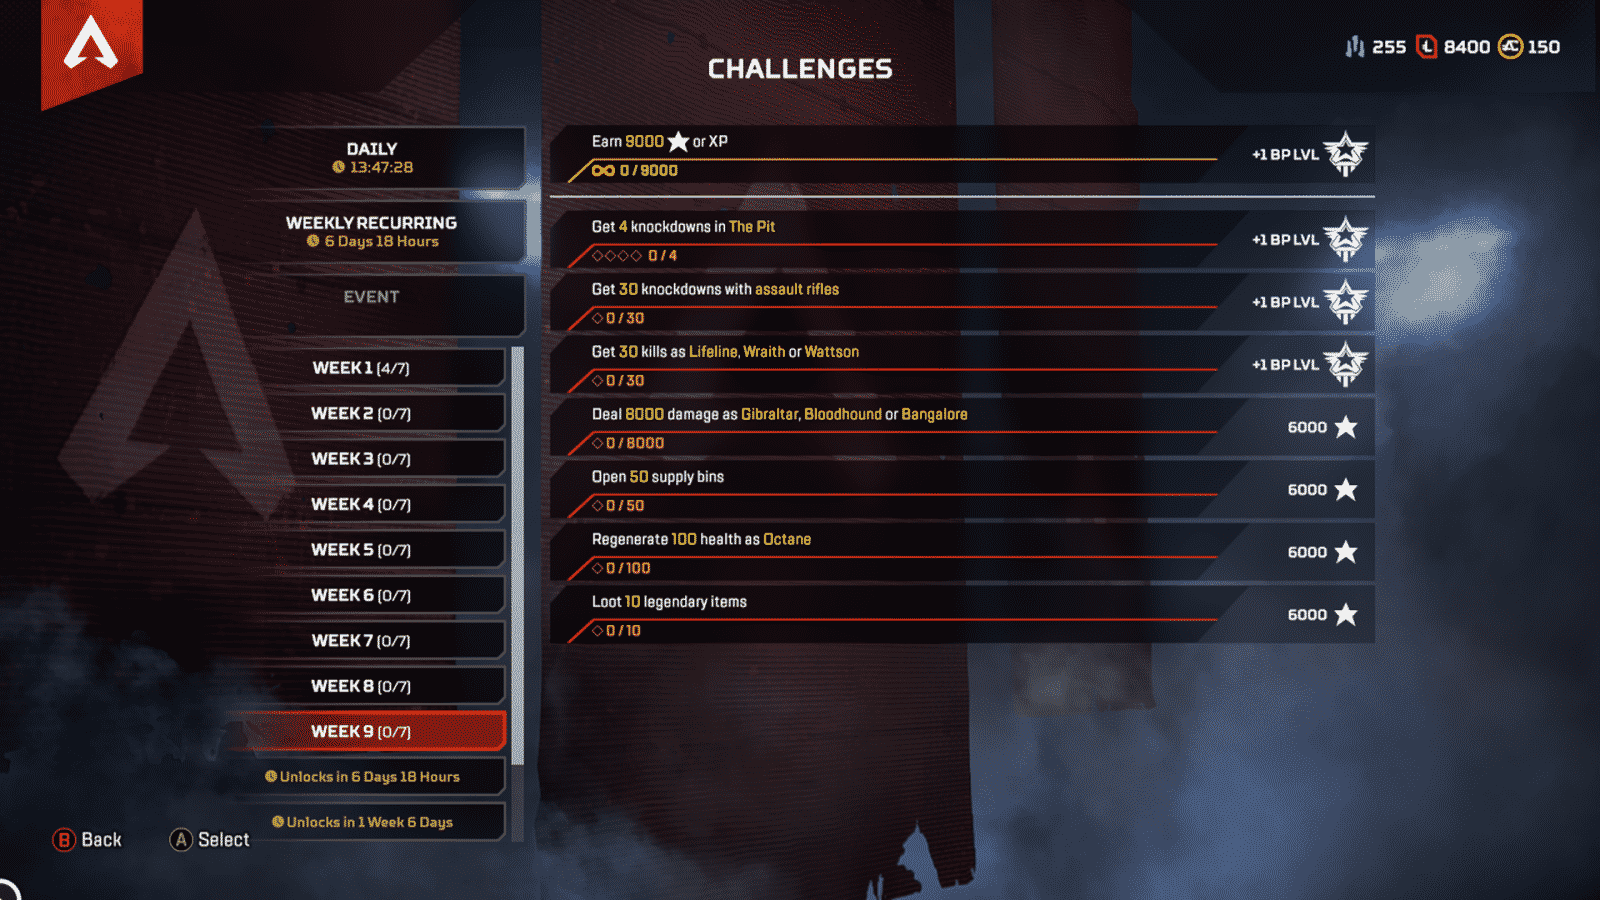 Week 9 challenges for Apex Legends season 2